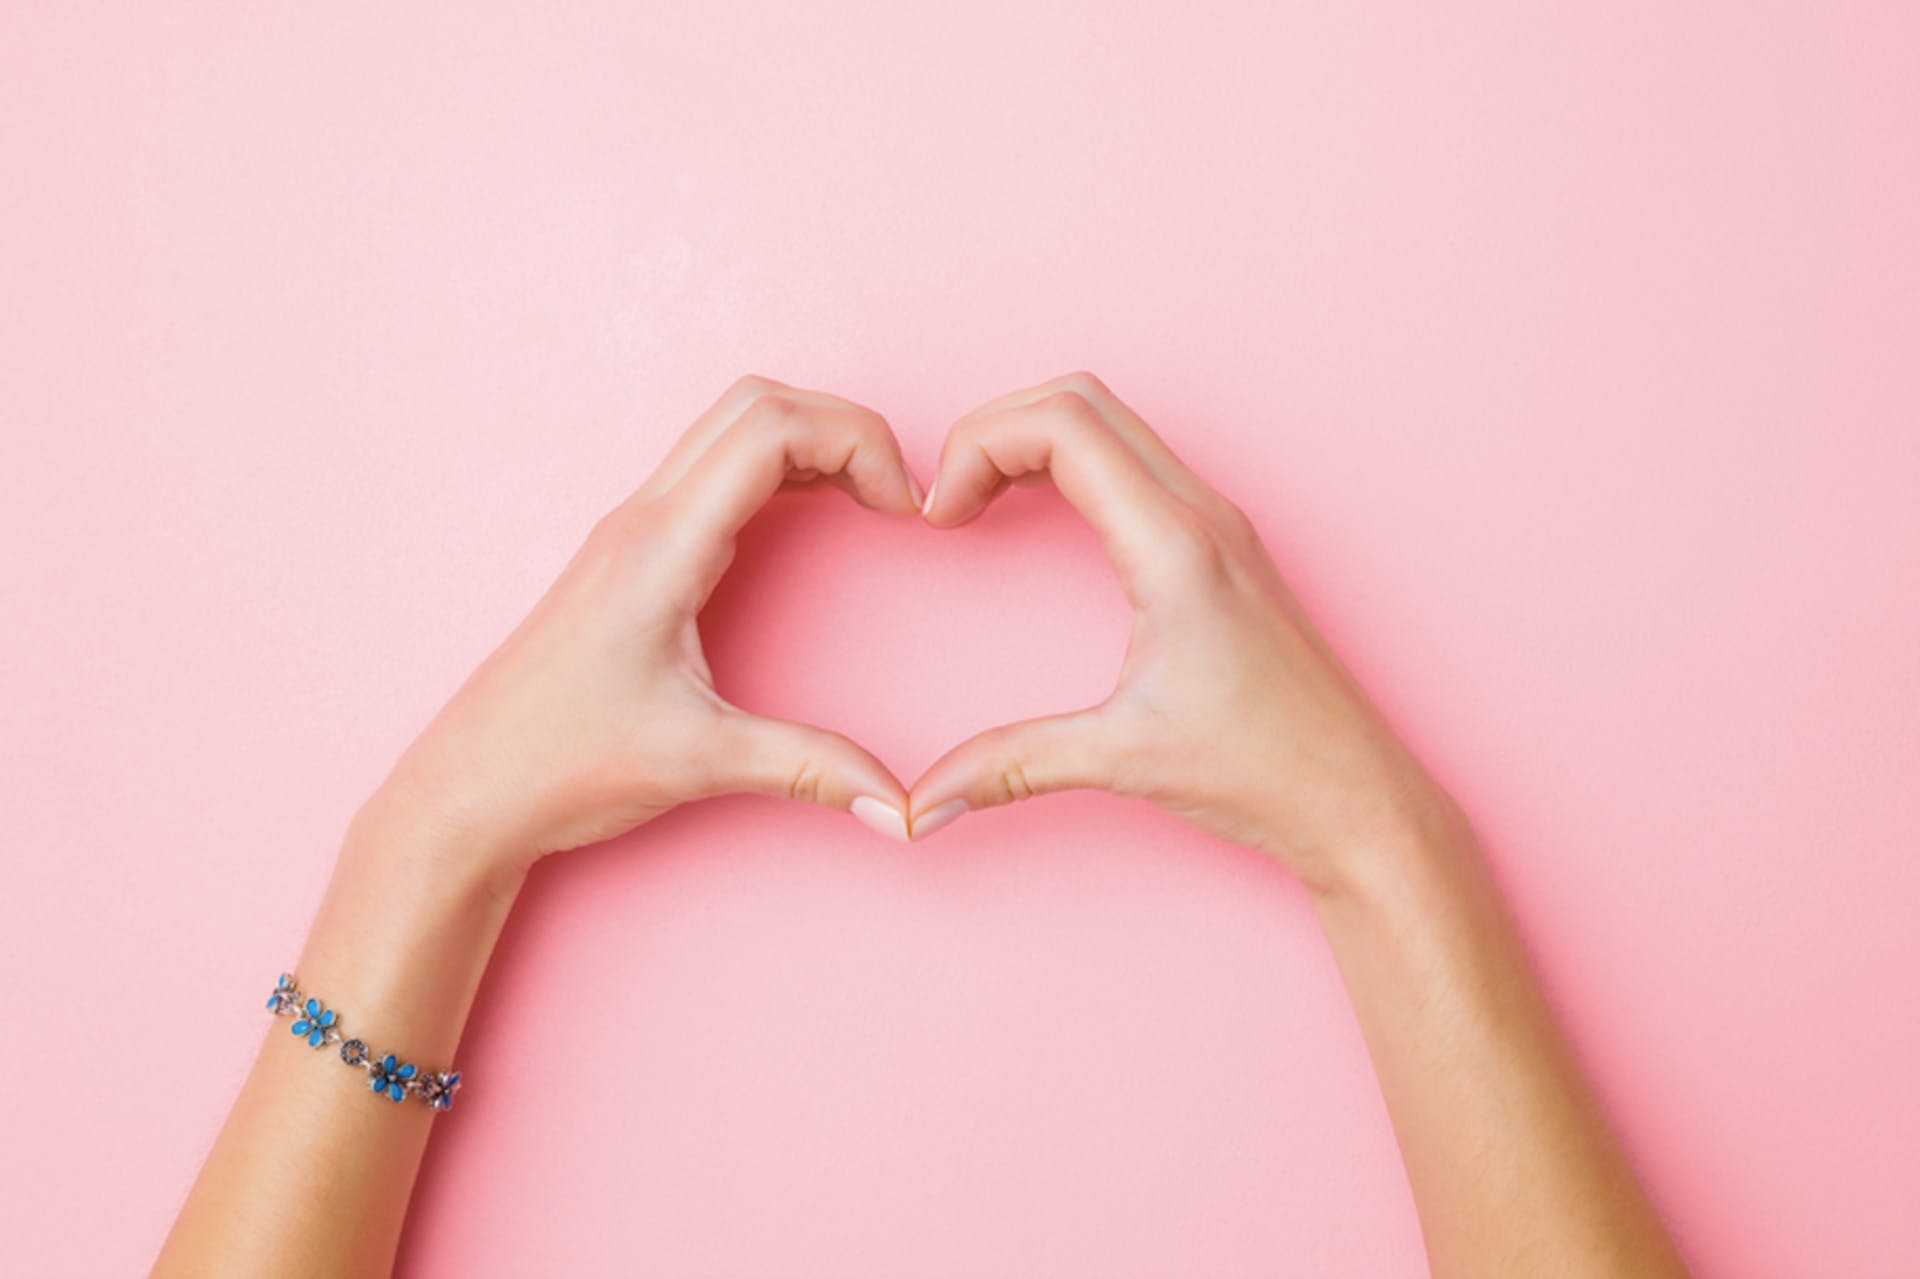 hand creating a heart shape against a pink background